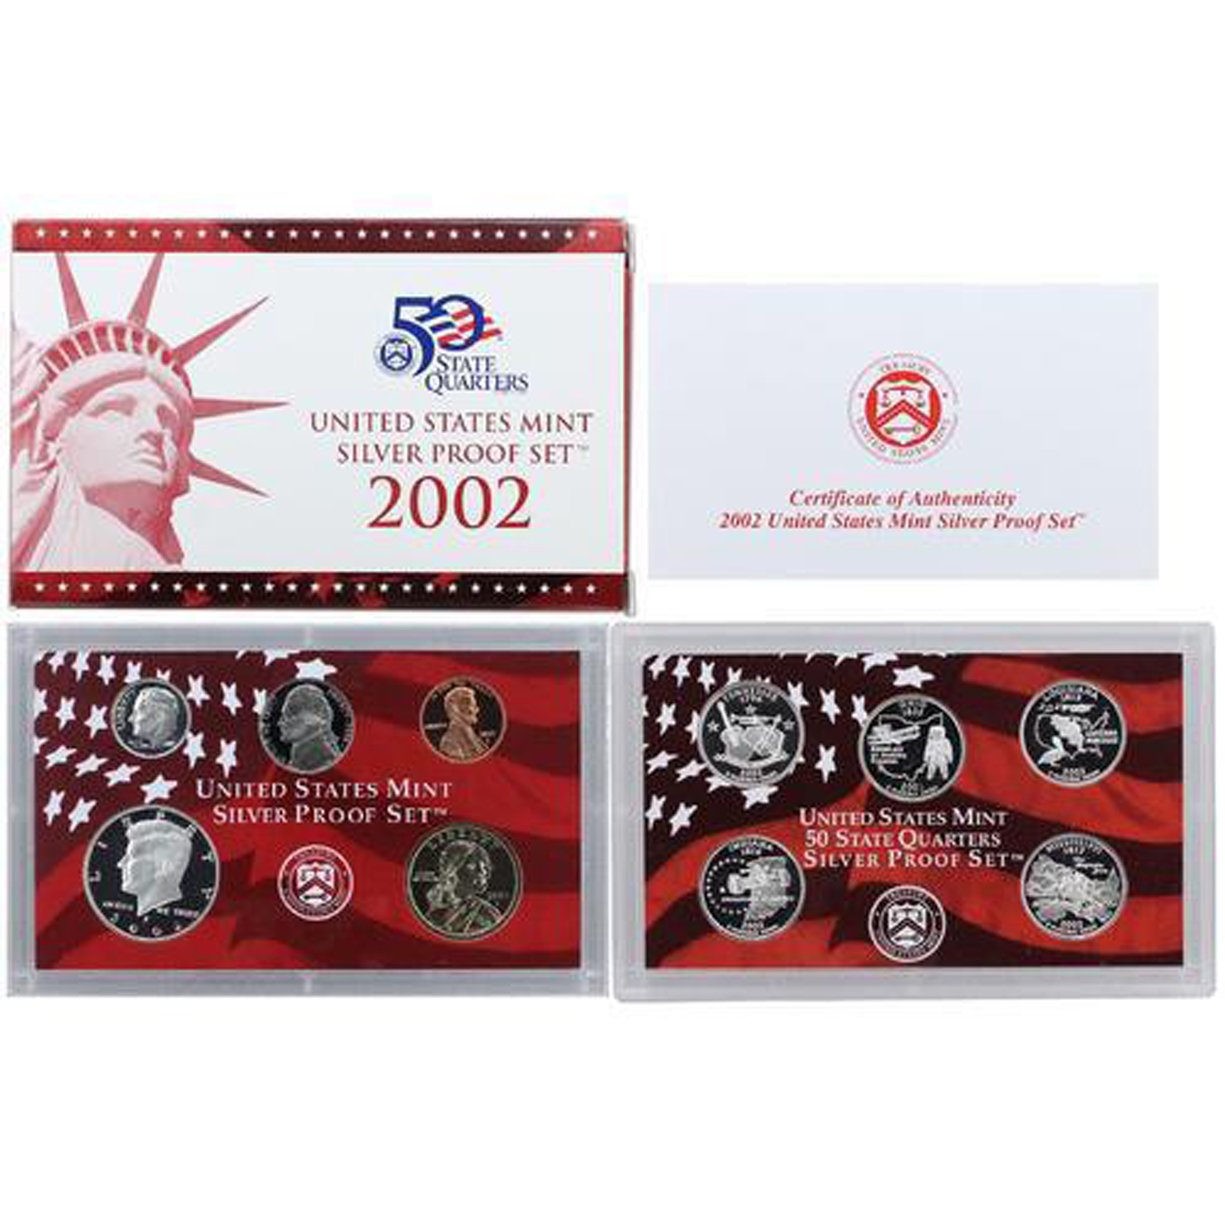 2002 PROOF SET INCLUDES THE STATE QUARTERS...FREE SHIPPING AS ALWAYS